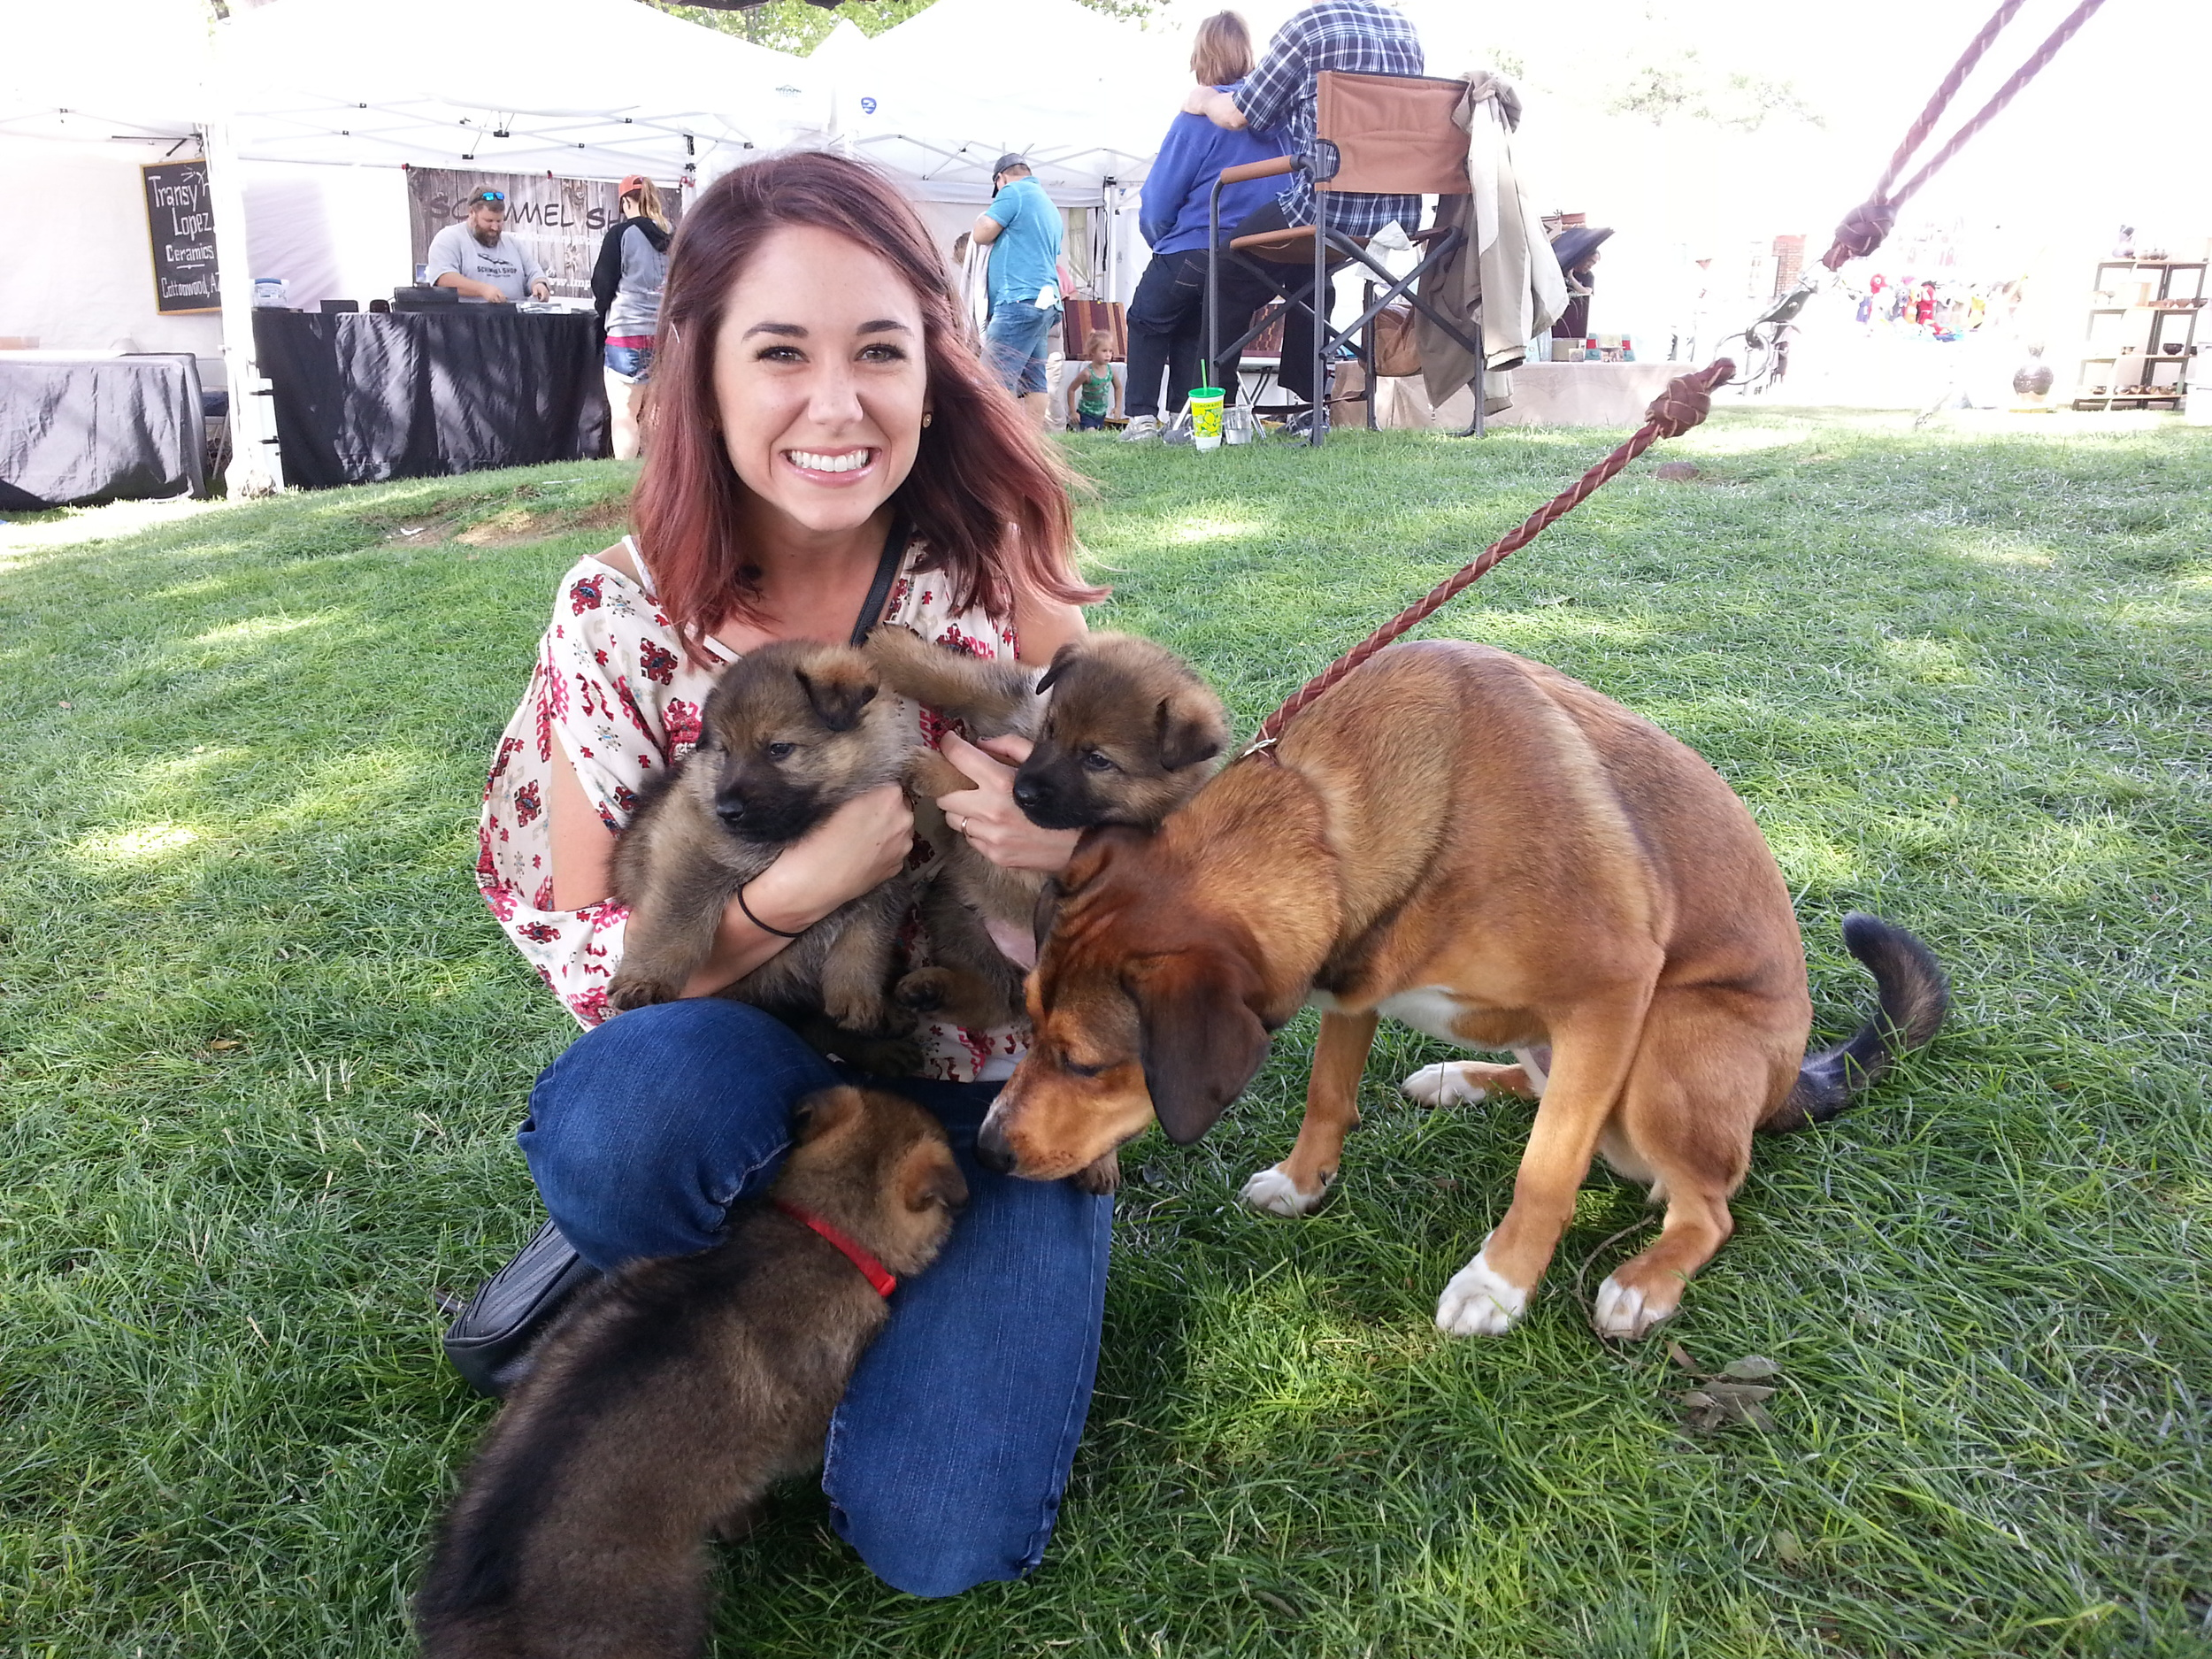 The puppies spent some time socializing with new people and friendly dogs at Art in the Park.